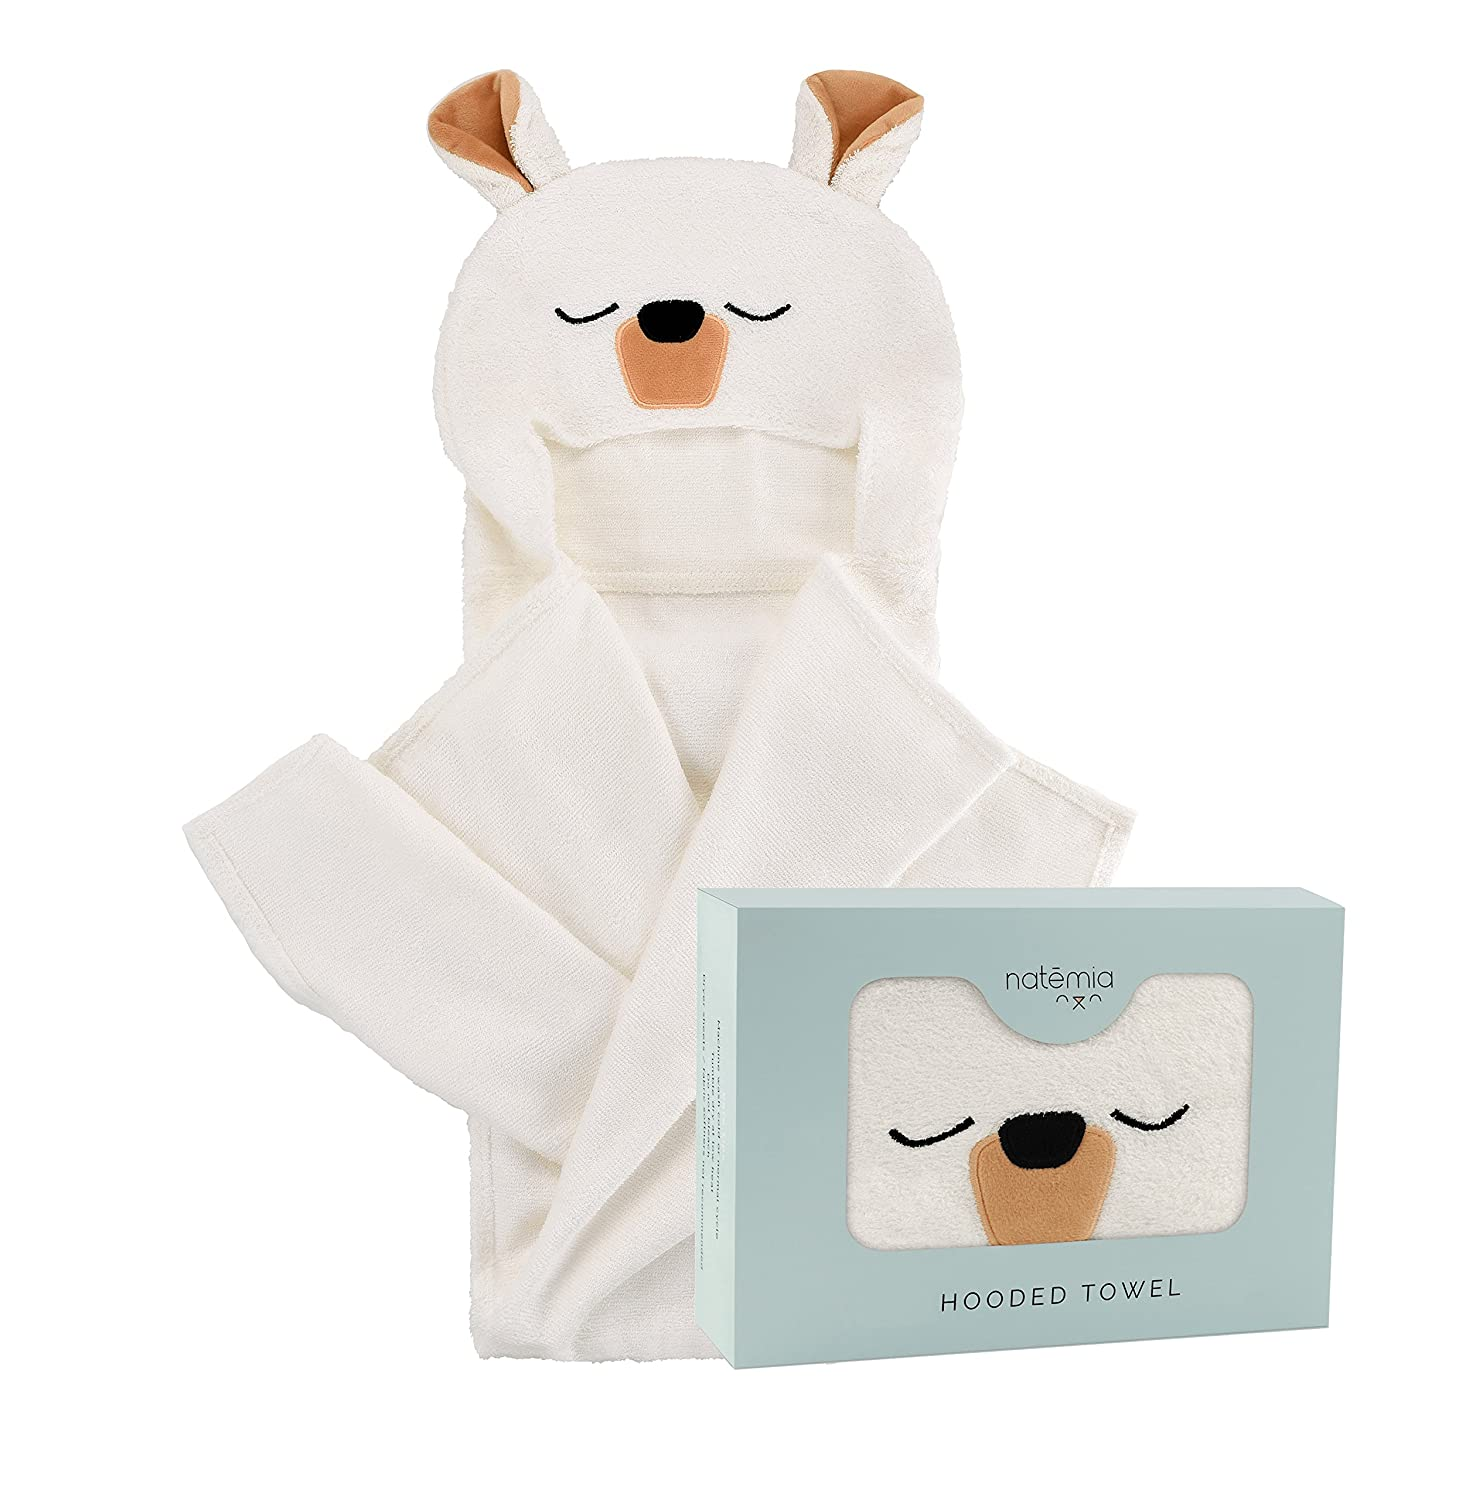 Natemia Extra Soft Rayon from Bamboo Hooded Towel for Kids | Highly Absorbent and Hypoallergenic | 40 X 30 Large Animal Face Baby Bath Towel | Great Baby Shower \ Registry Gift for Boys and Girls